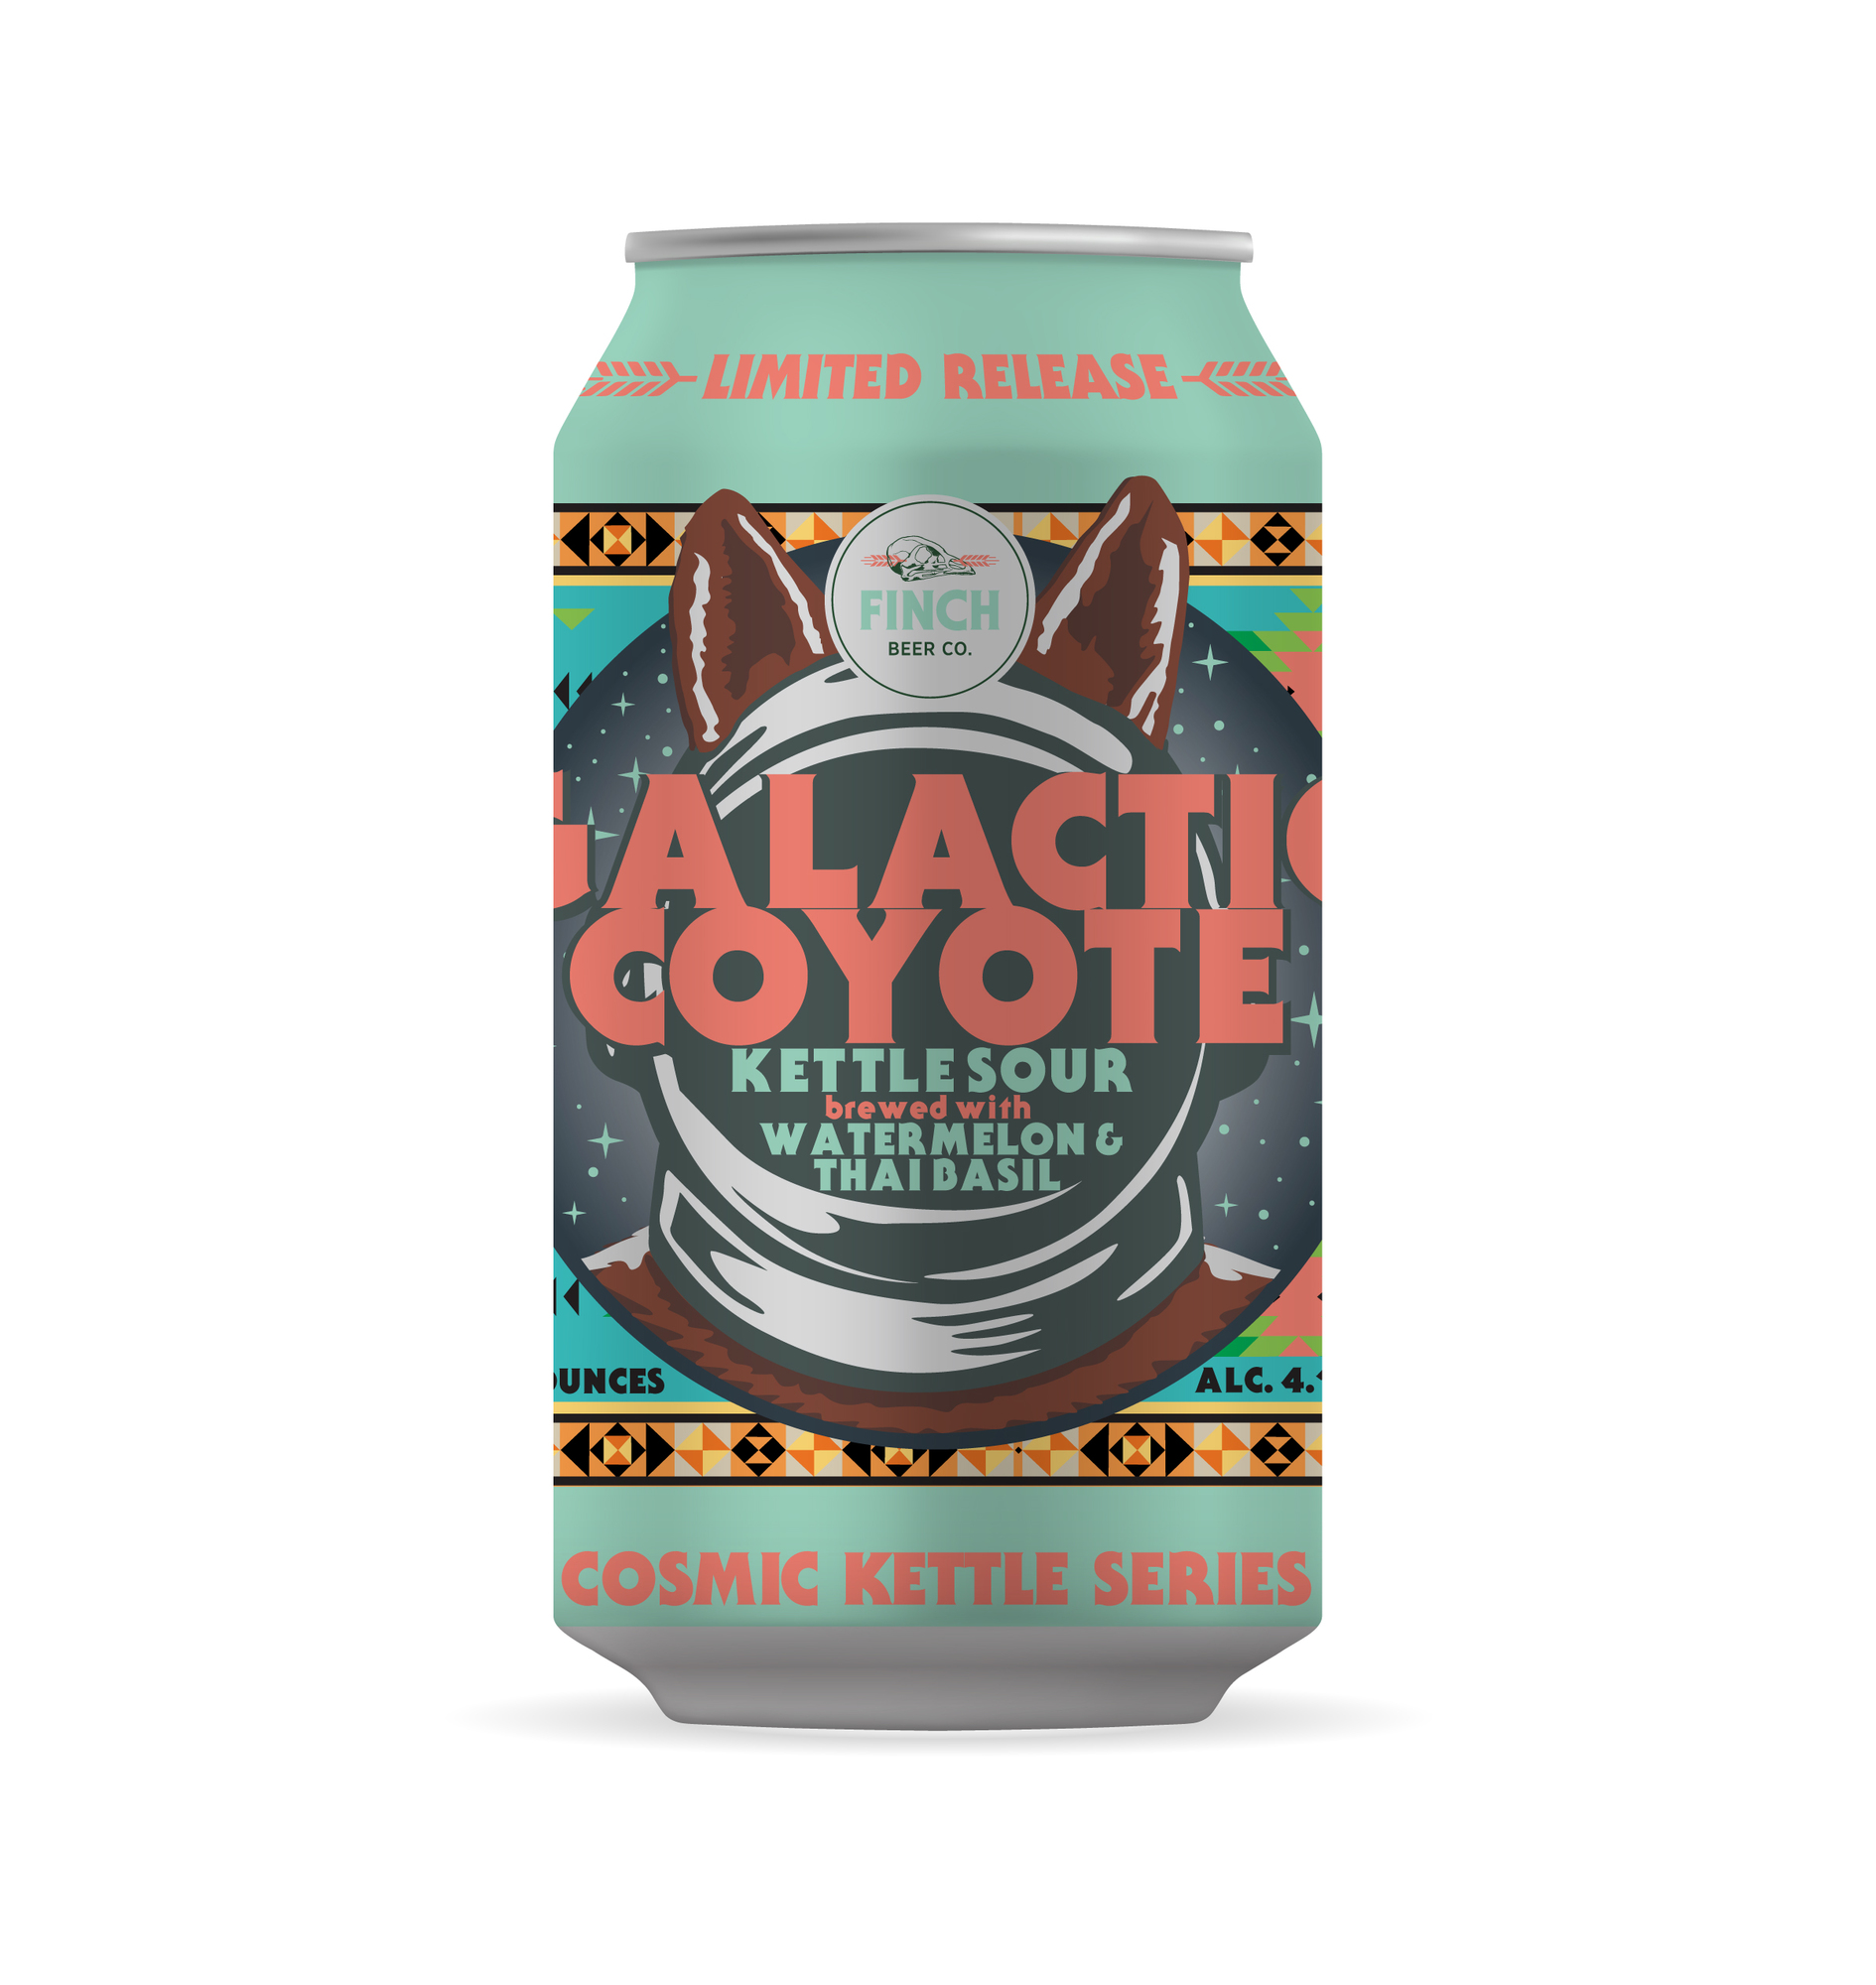 Finch Galactic Coyote beer Label Full Size